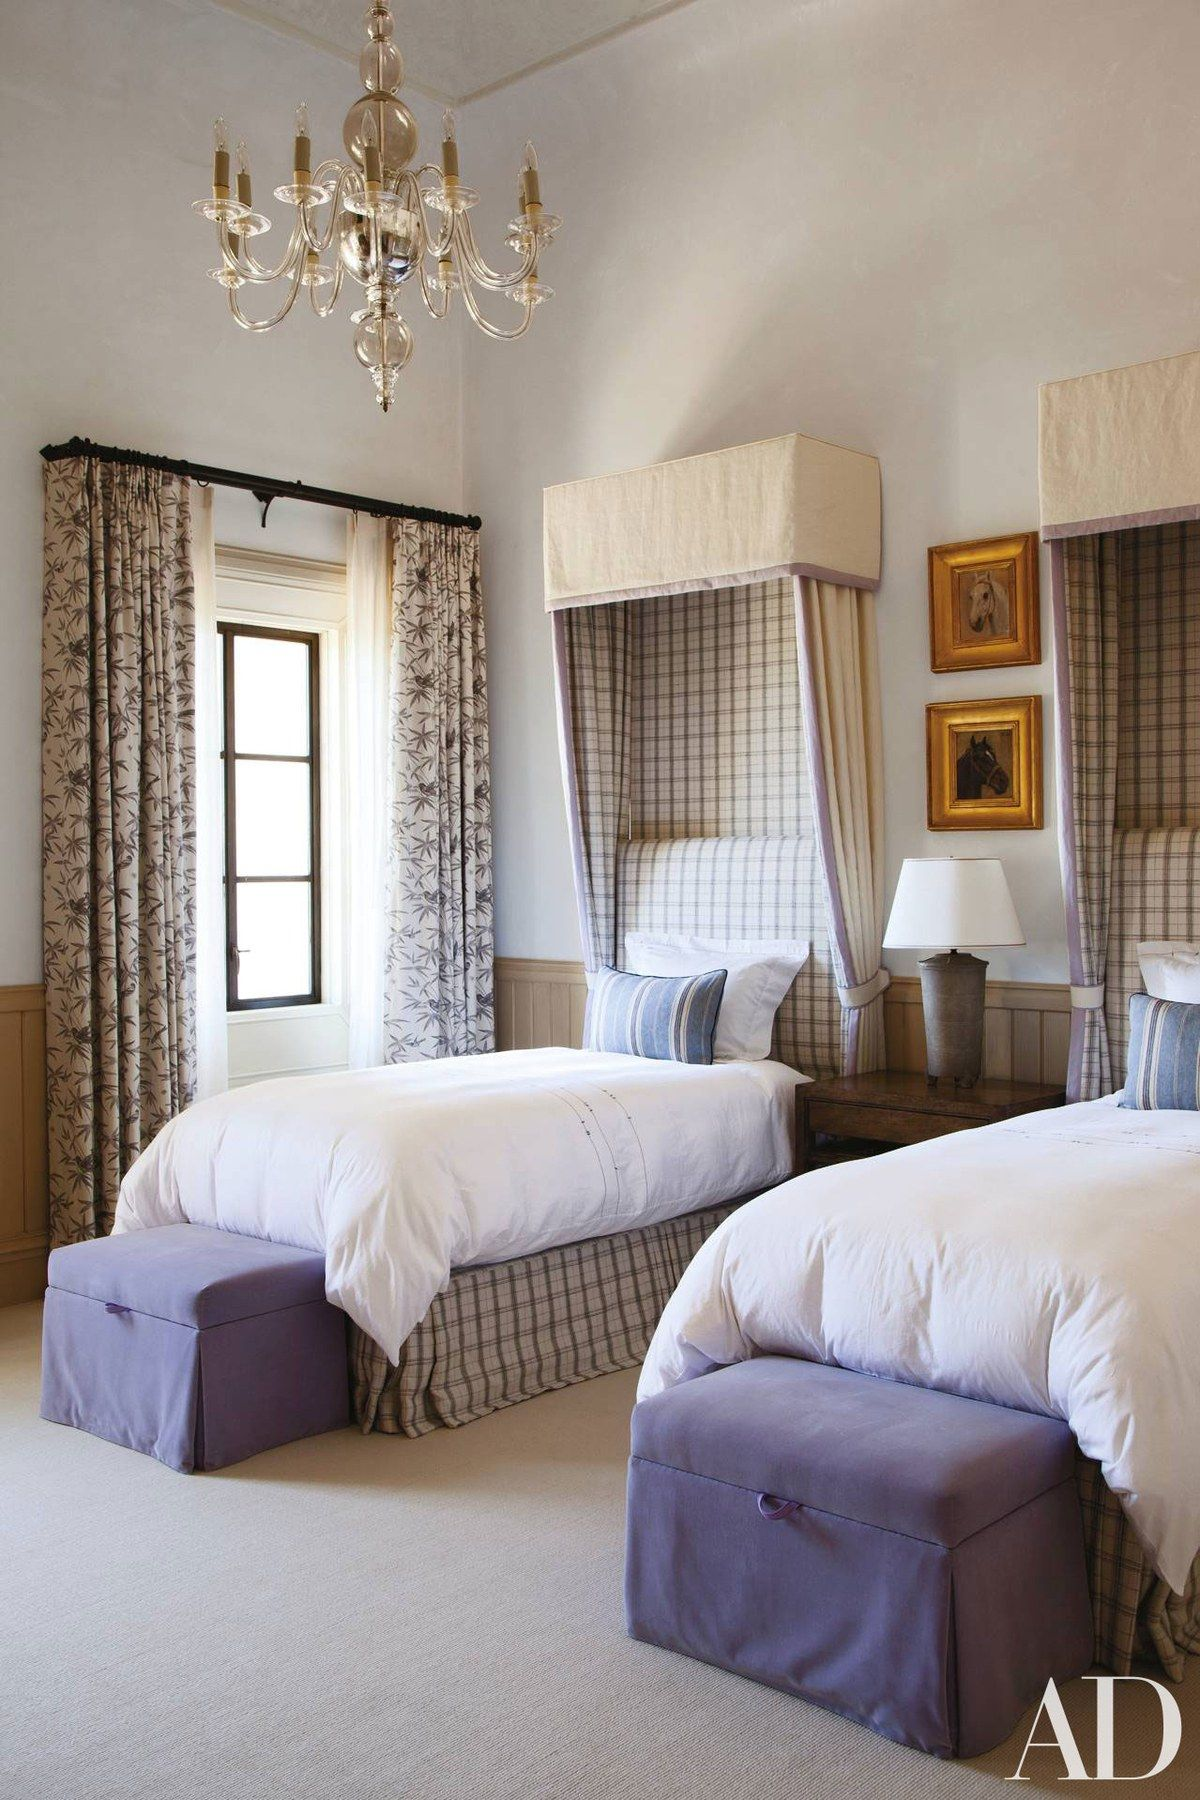 The Classic Cloth plaid on the beds